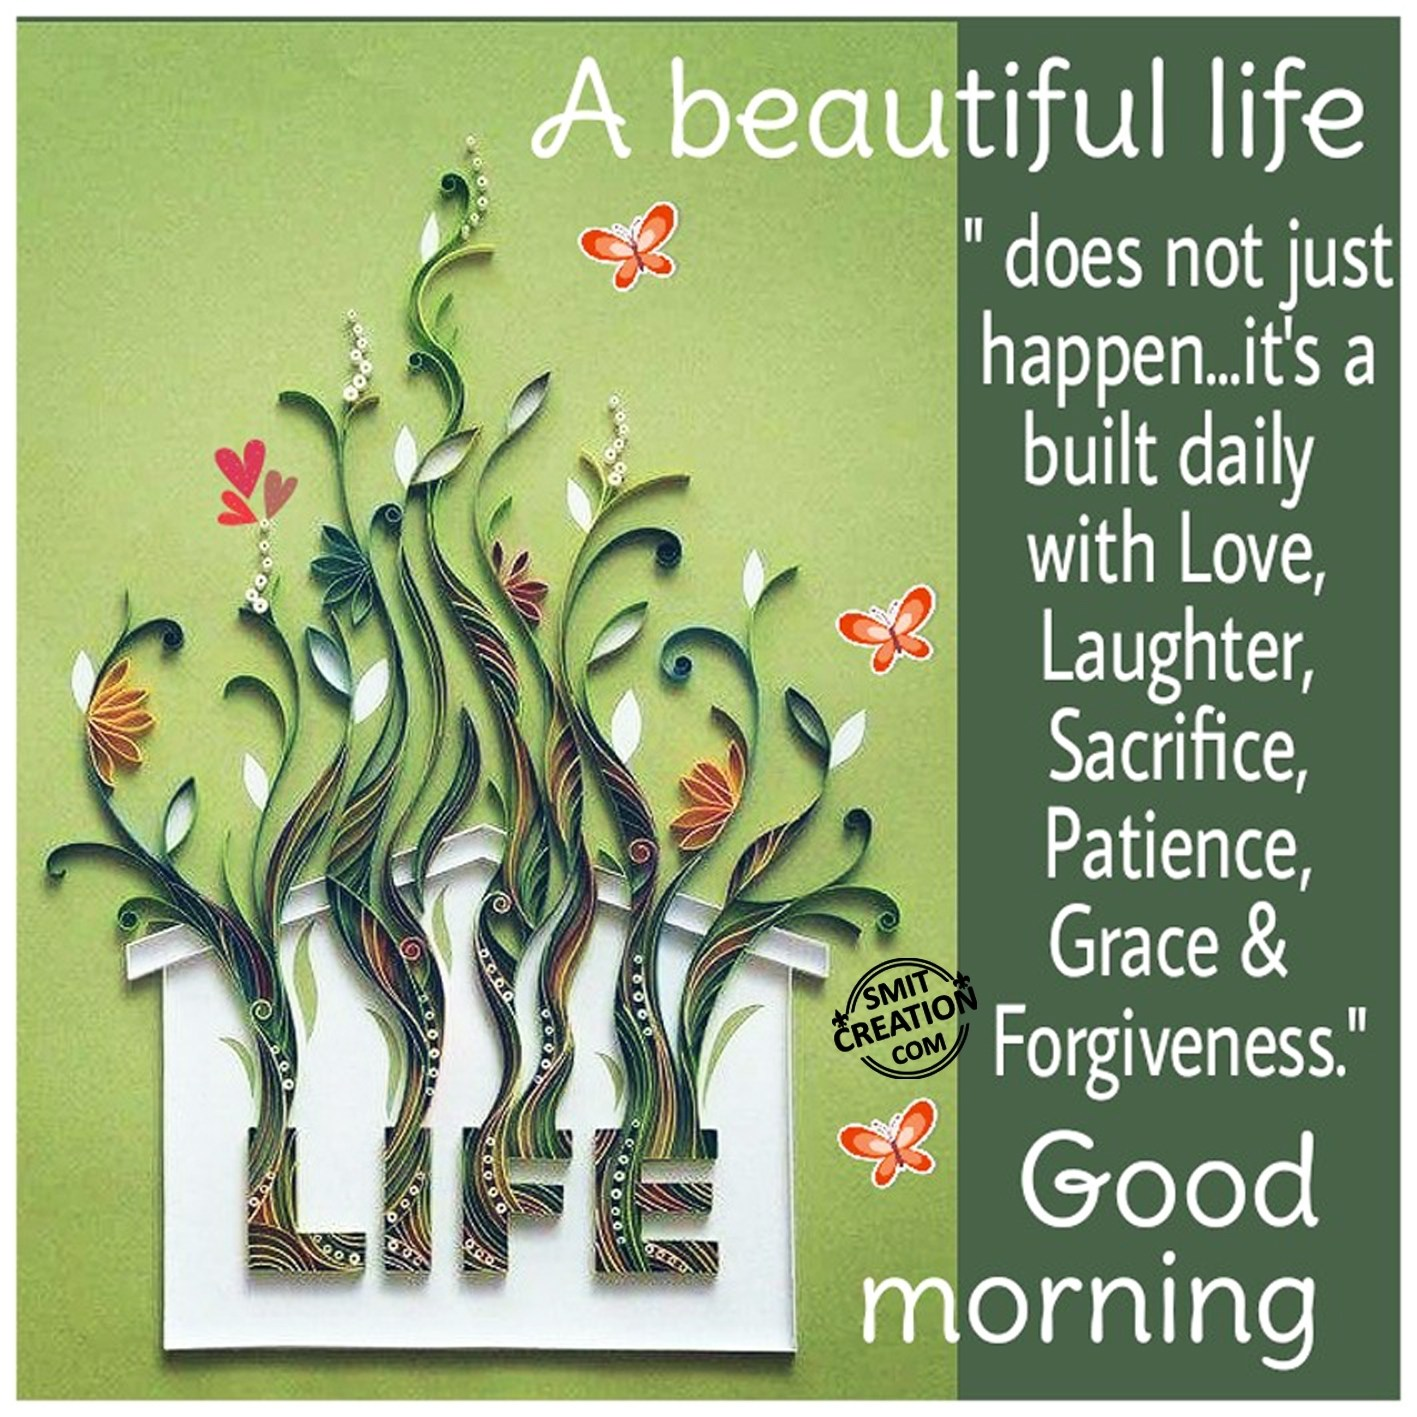 Good Morning Life Pictures And Graphics Smitcreationcom Page 7